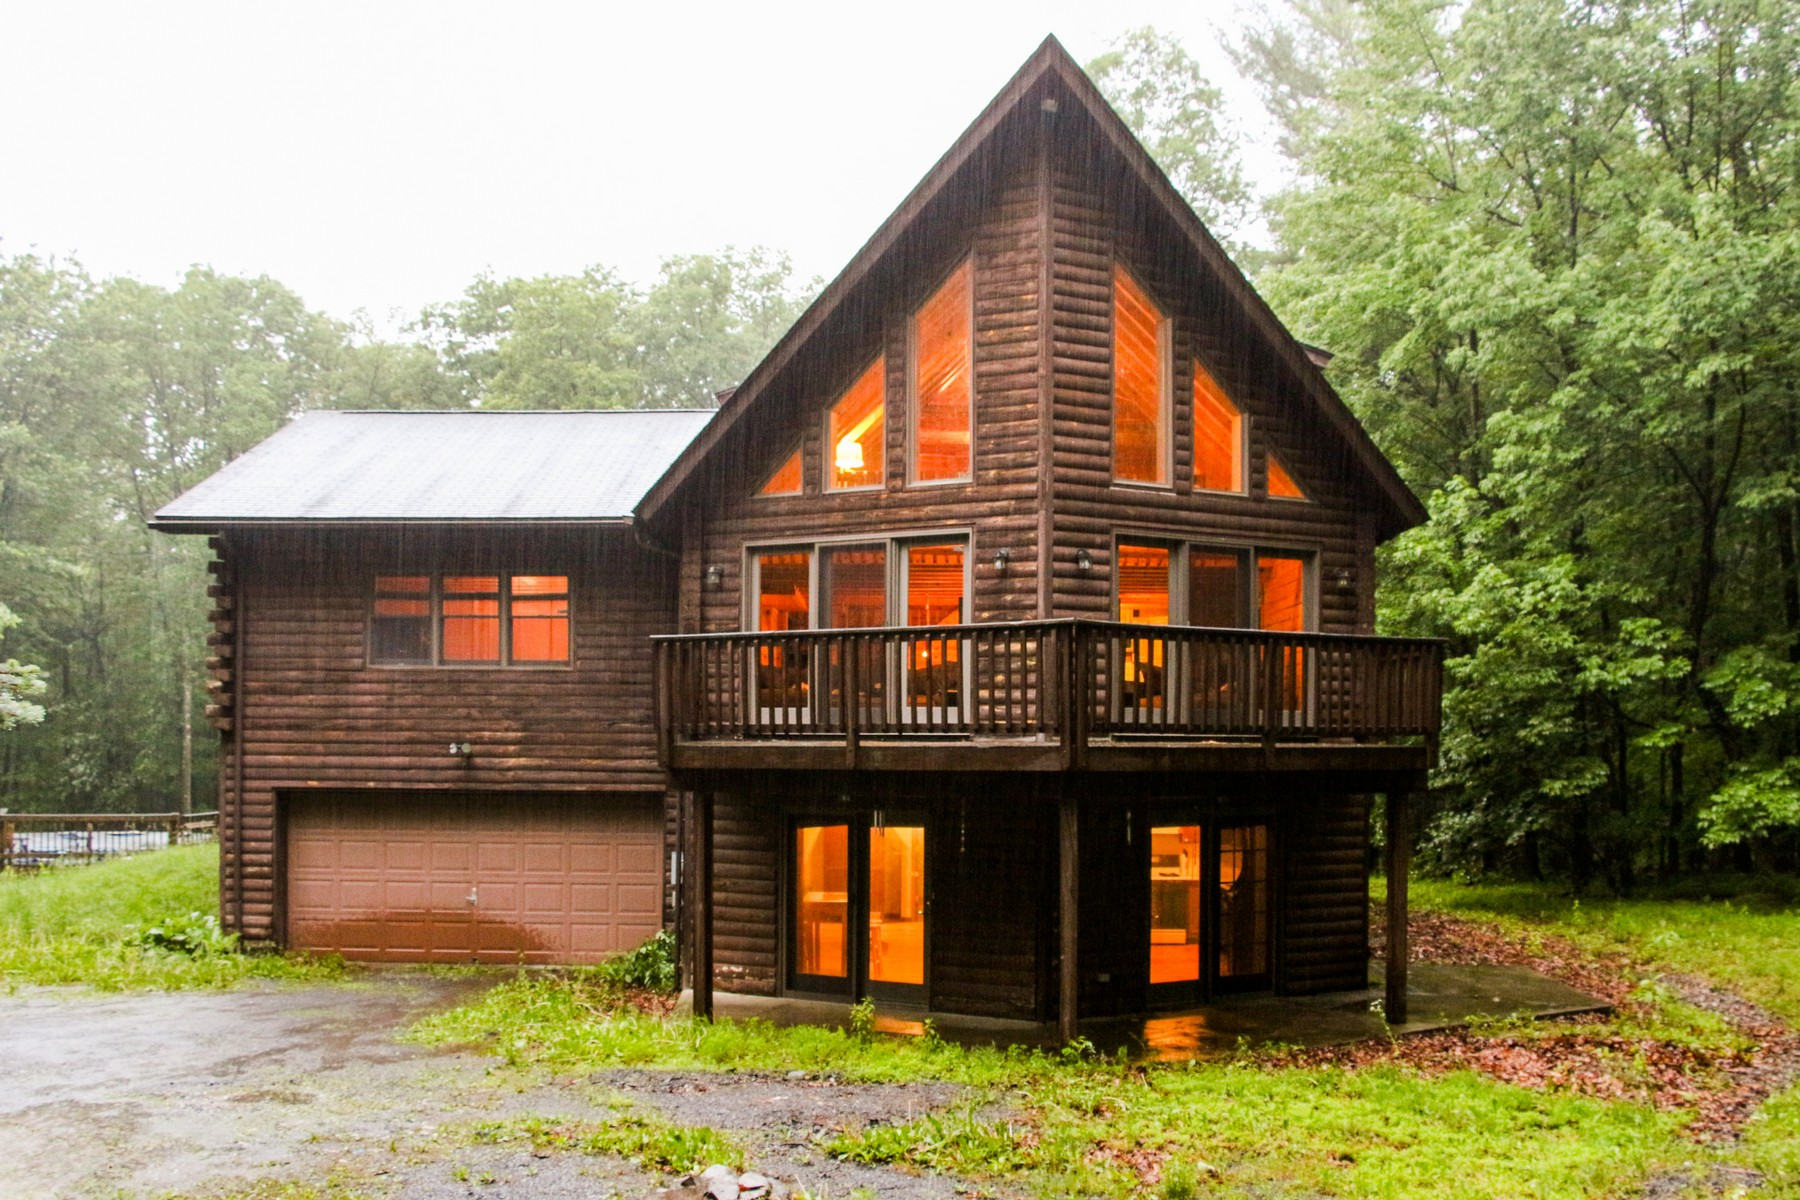 Single Family Home for Sale at Custom Log Home in Greenville 38 Elfwood Path Lane Port Jervis, New York 12771 United States